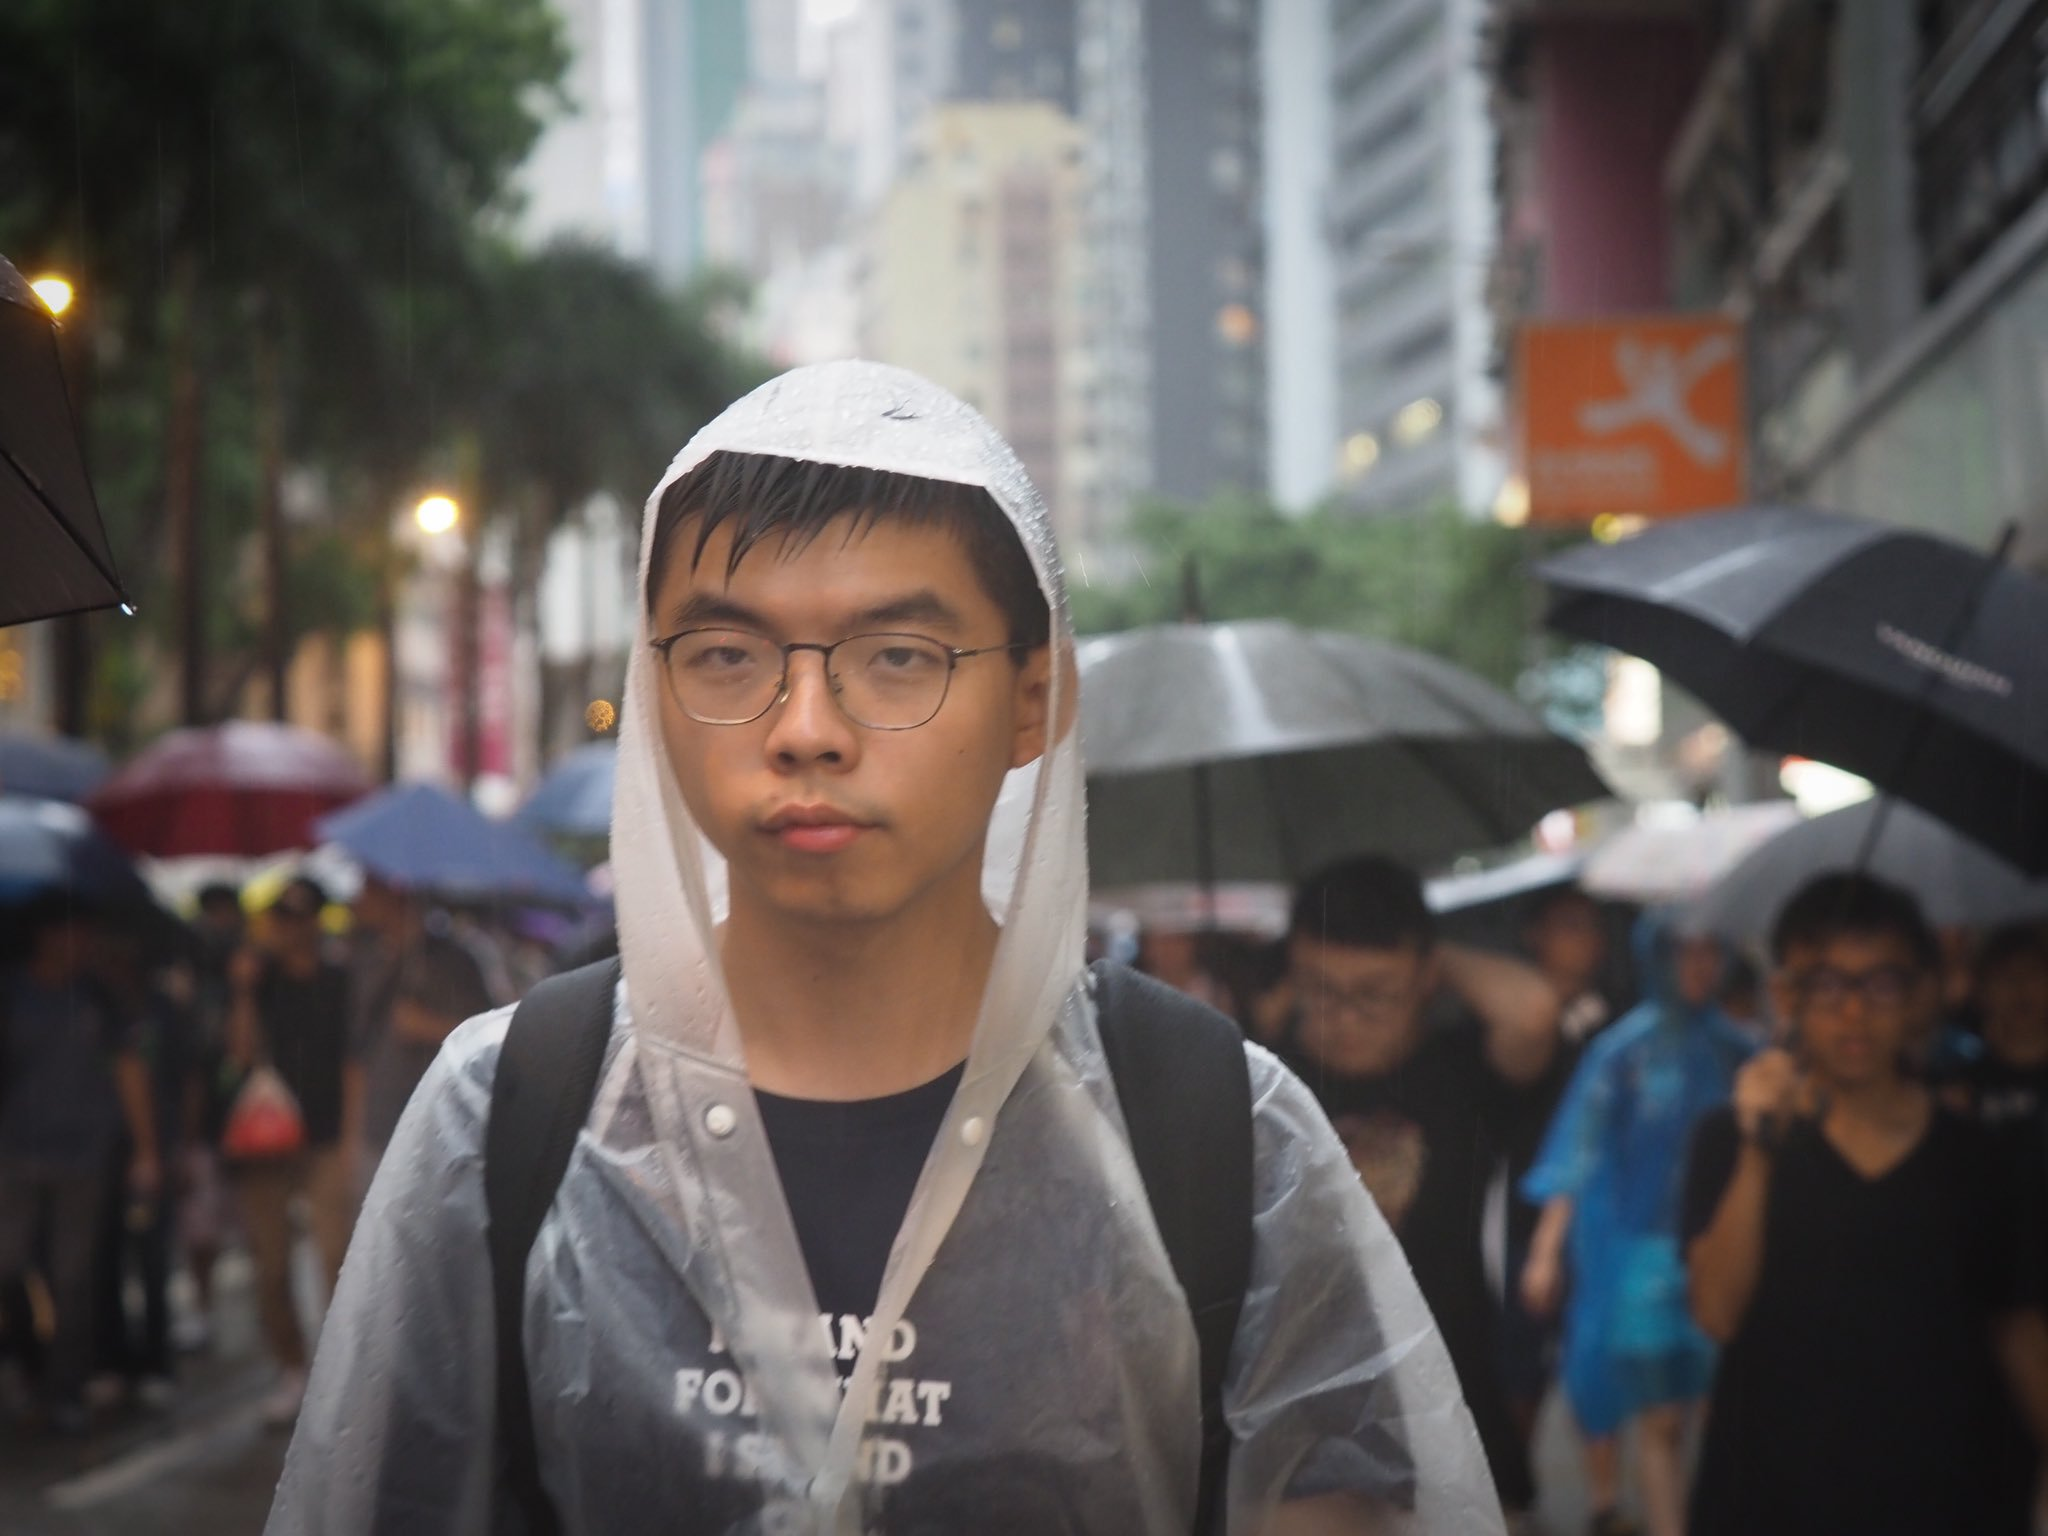 Toilet Stops and Encrypted Apps: How Hong Kong's Protests Are Coordinated